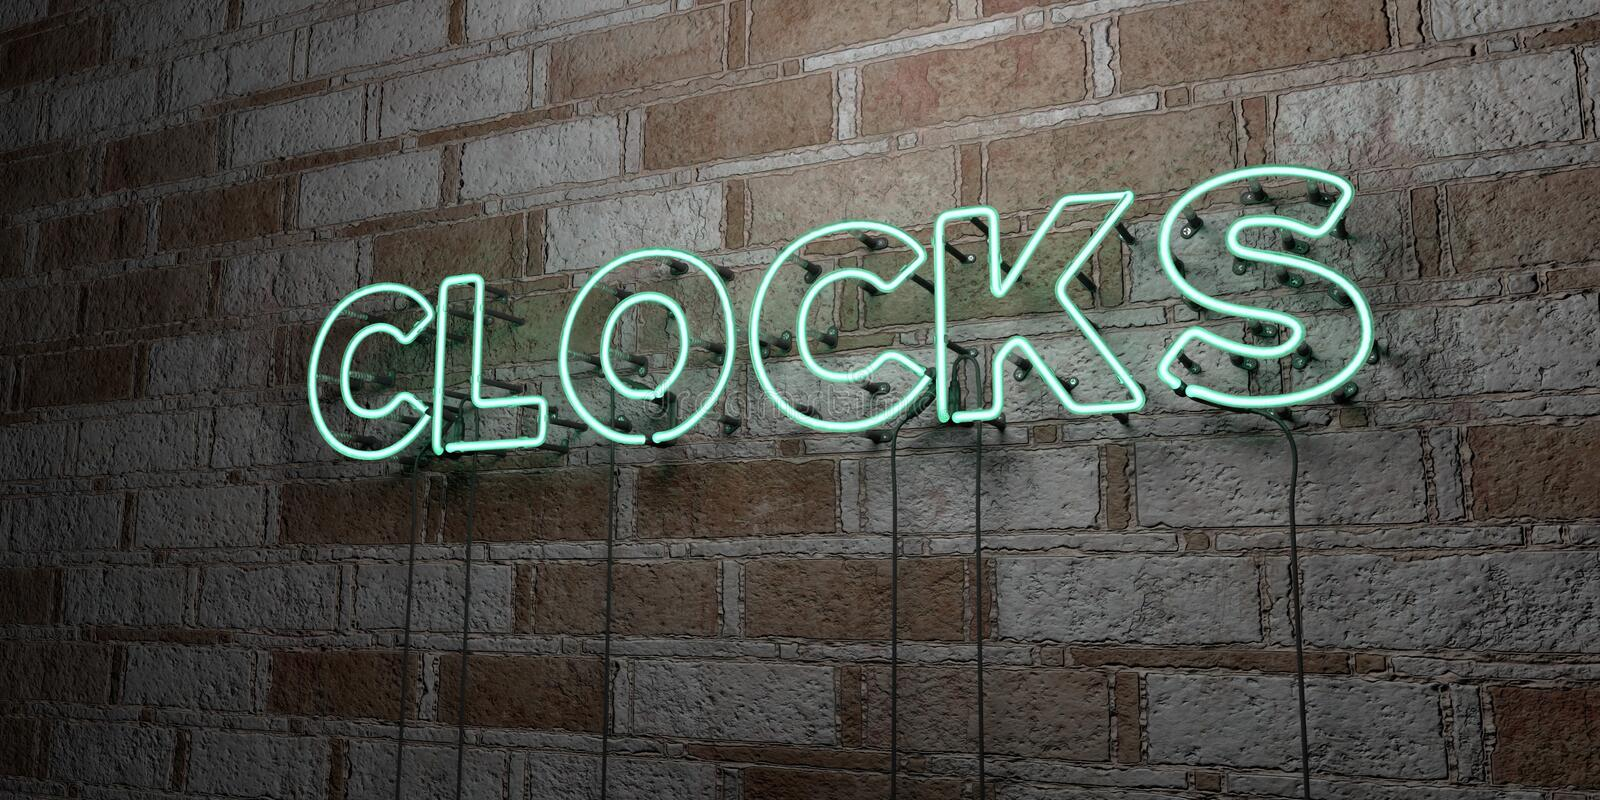 CLOCKS - Glowing Neon Sign on stonework wall - 3D rendered royalty free stock illustration. Can be used for online banner ads and direct mailers vector illustration